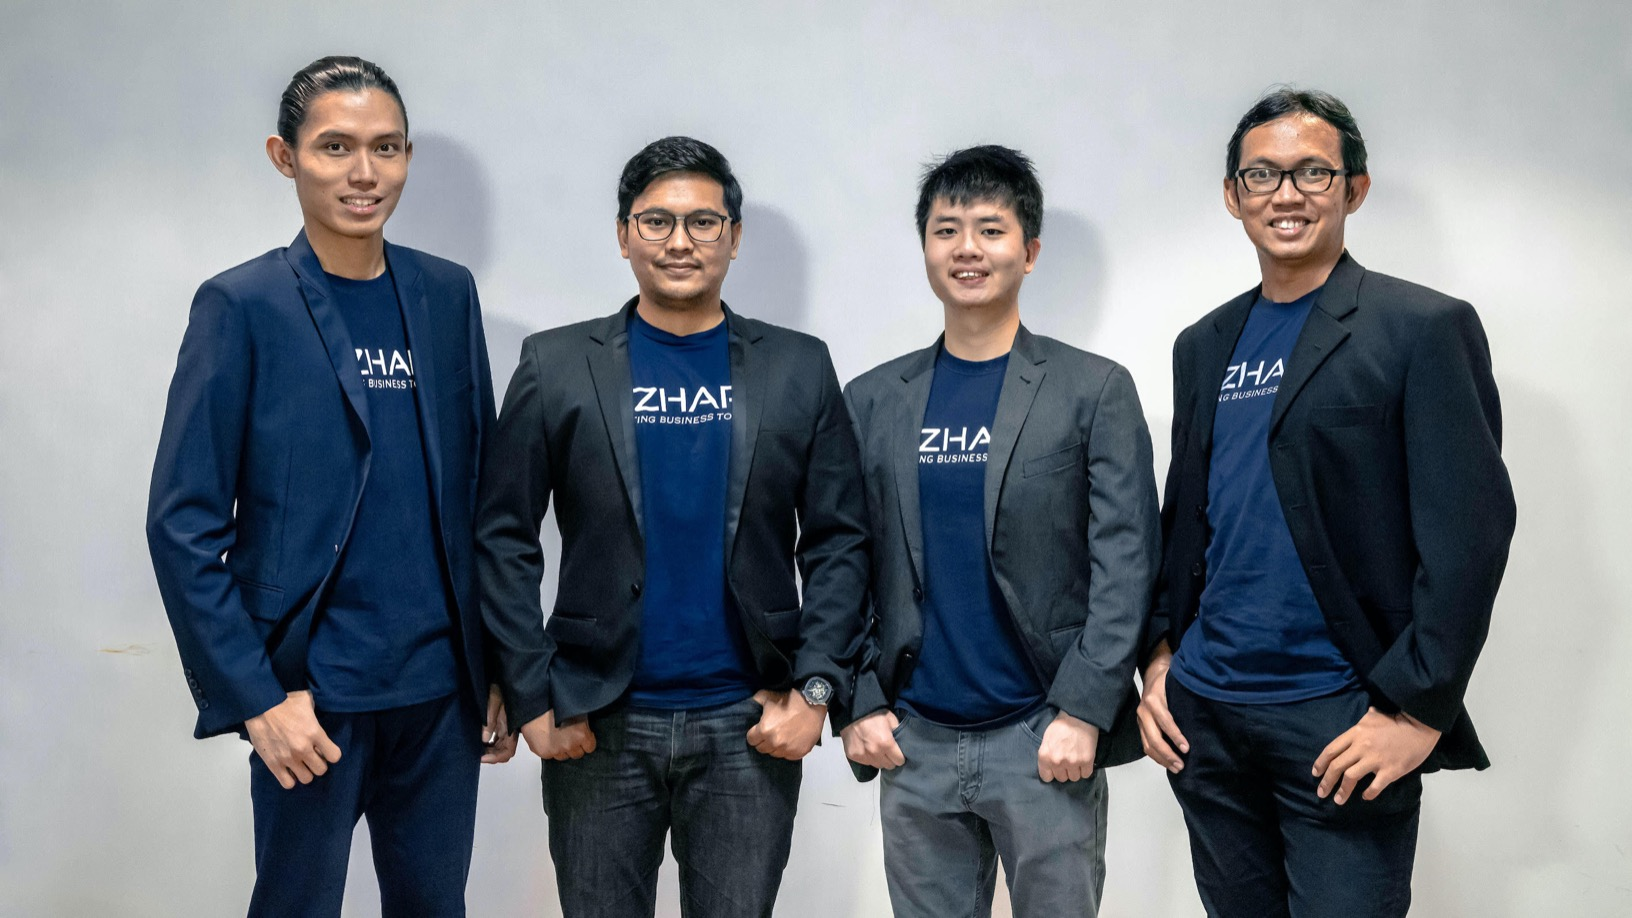 Bizhare equity crowdfunding attracts over 50,000 retail investors, starts secondary trading